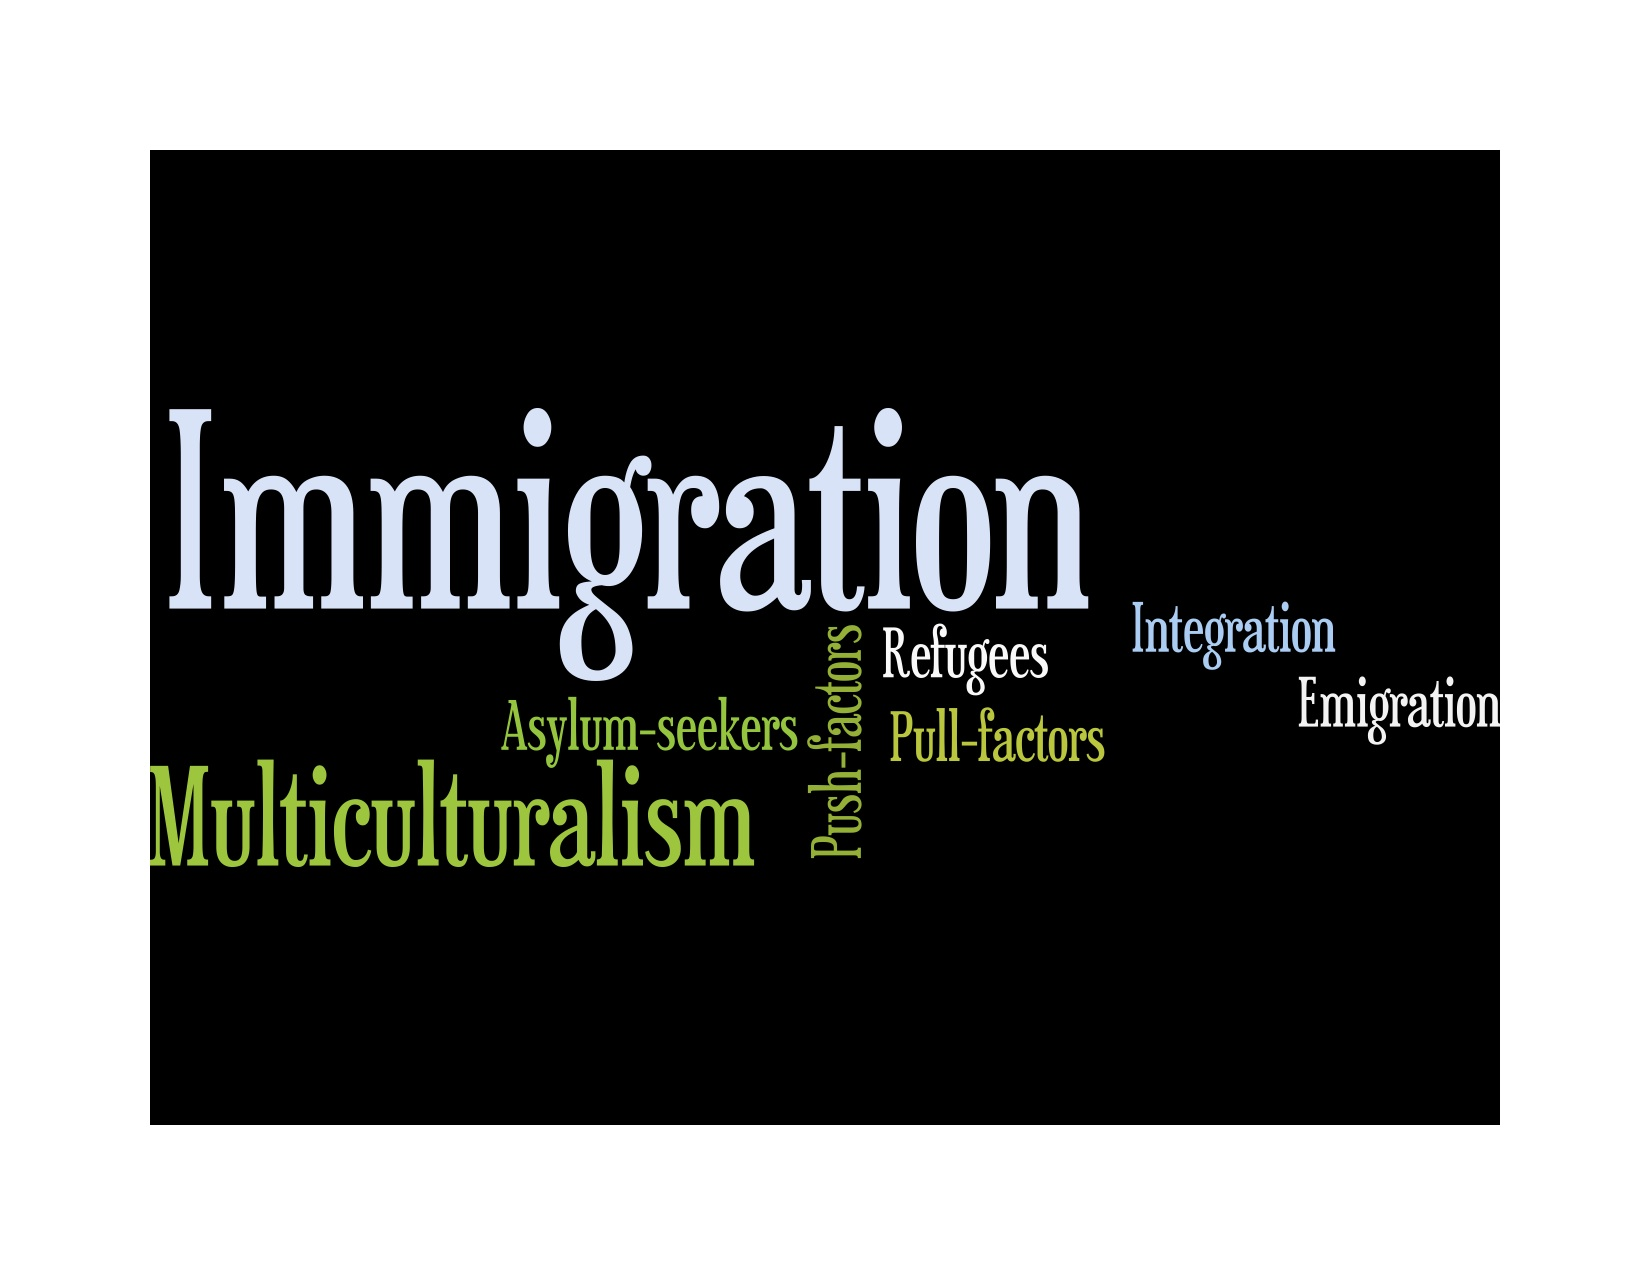 015 Immigration20wordle Essay Example About Marvelous Immigration In Canada Causes The United States Full